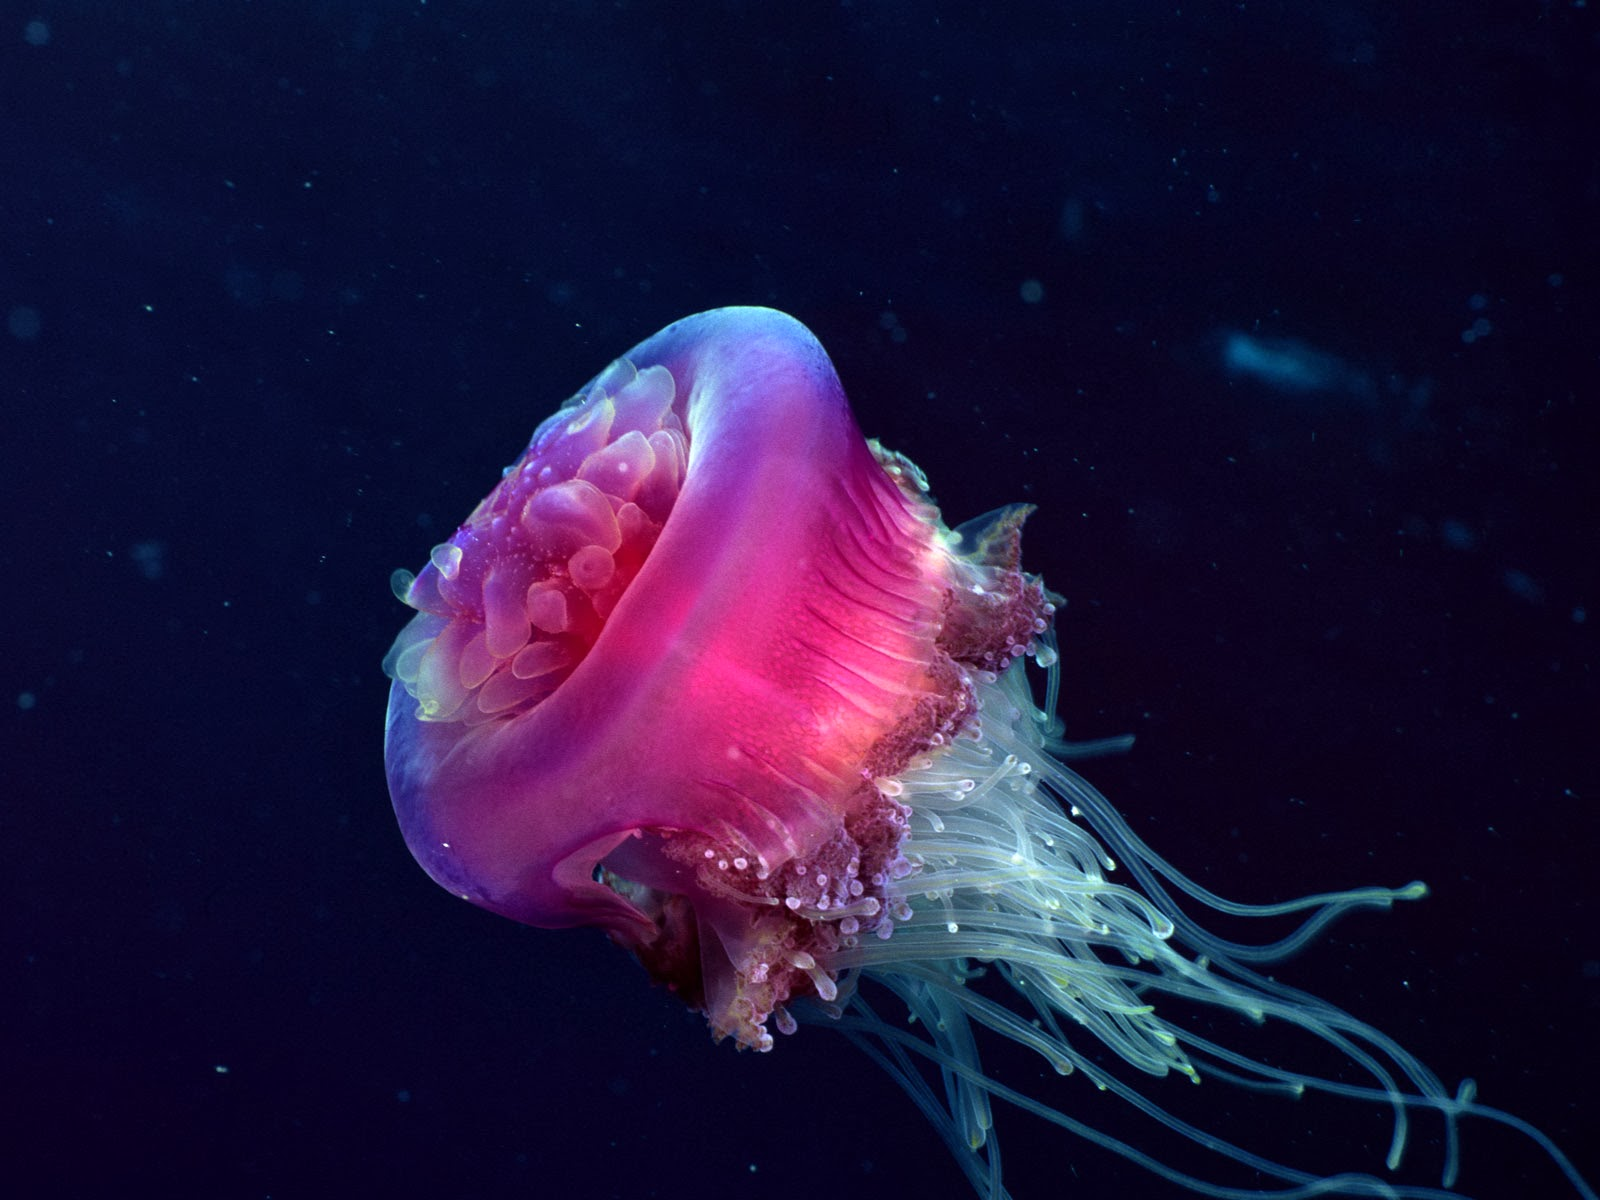 knowmorex.blogspot.com) Deep Sea Animals (4) - Squee! for Cute Deep Sea Creatures  173lyp